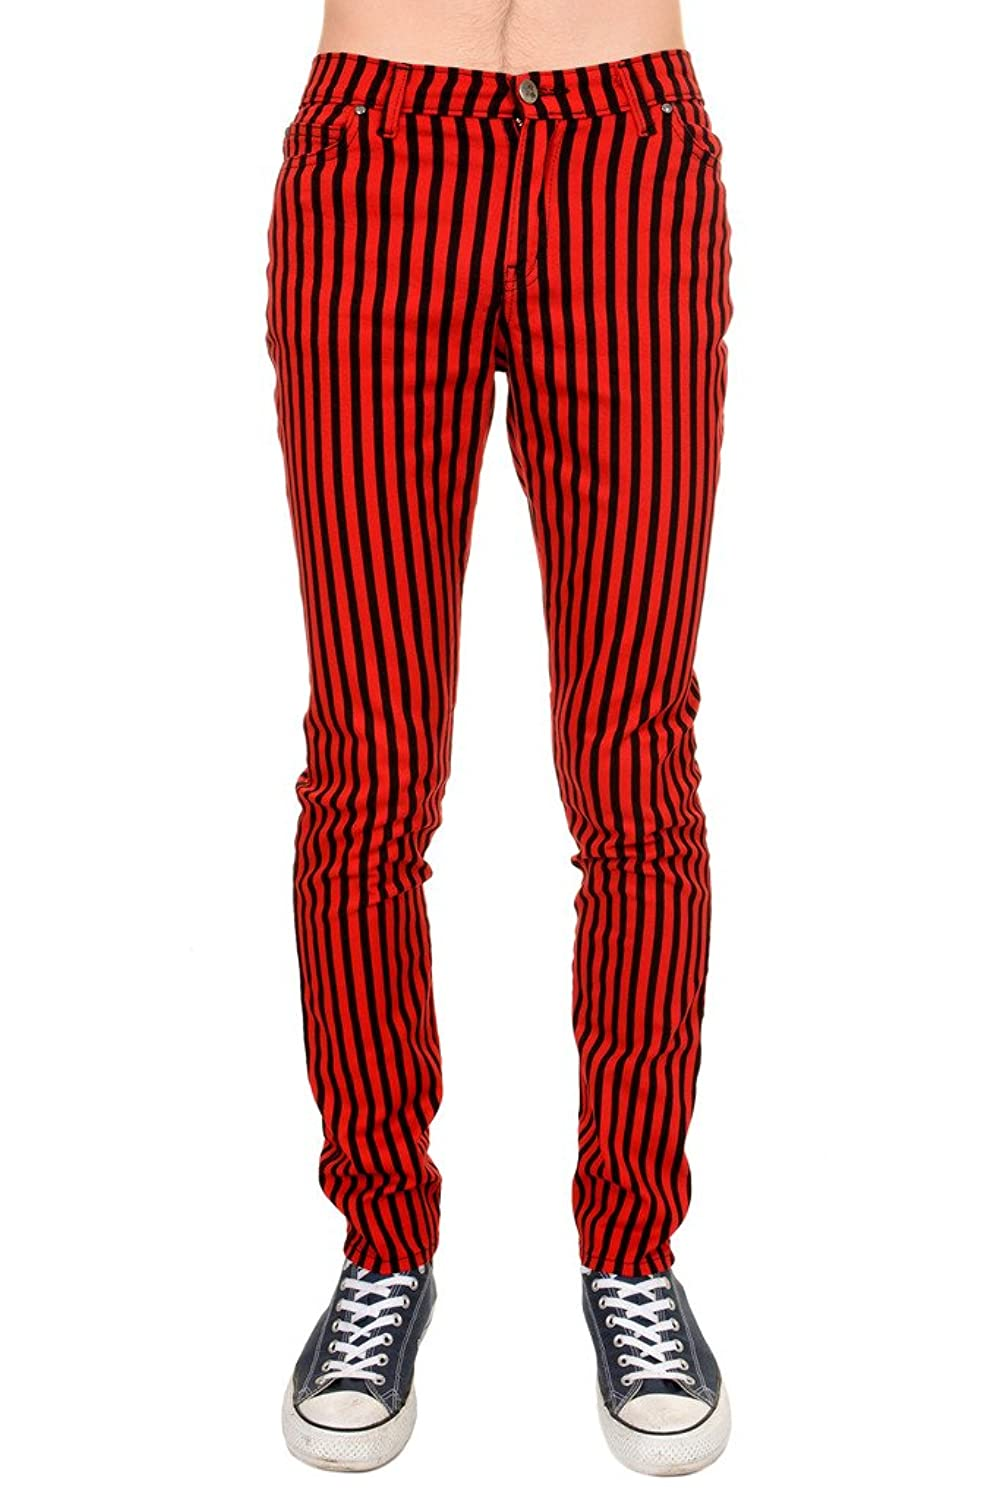 60s – 70s Mens Bell Bottom Jeans, Flares, Disco Pants Run & Fly Mens Indie Vintage Retro 60s 70s Mod Black Red Striped Stretch Skinny Jeans $51.95 AT vintagedancer.com